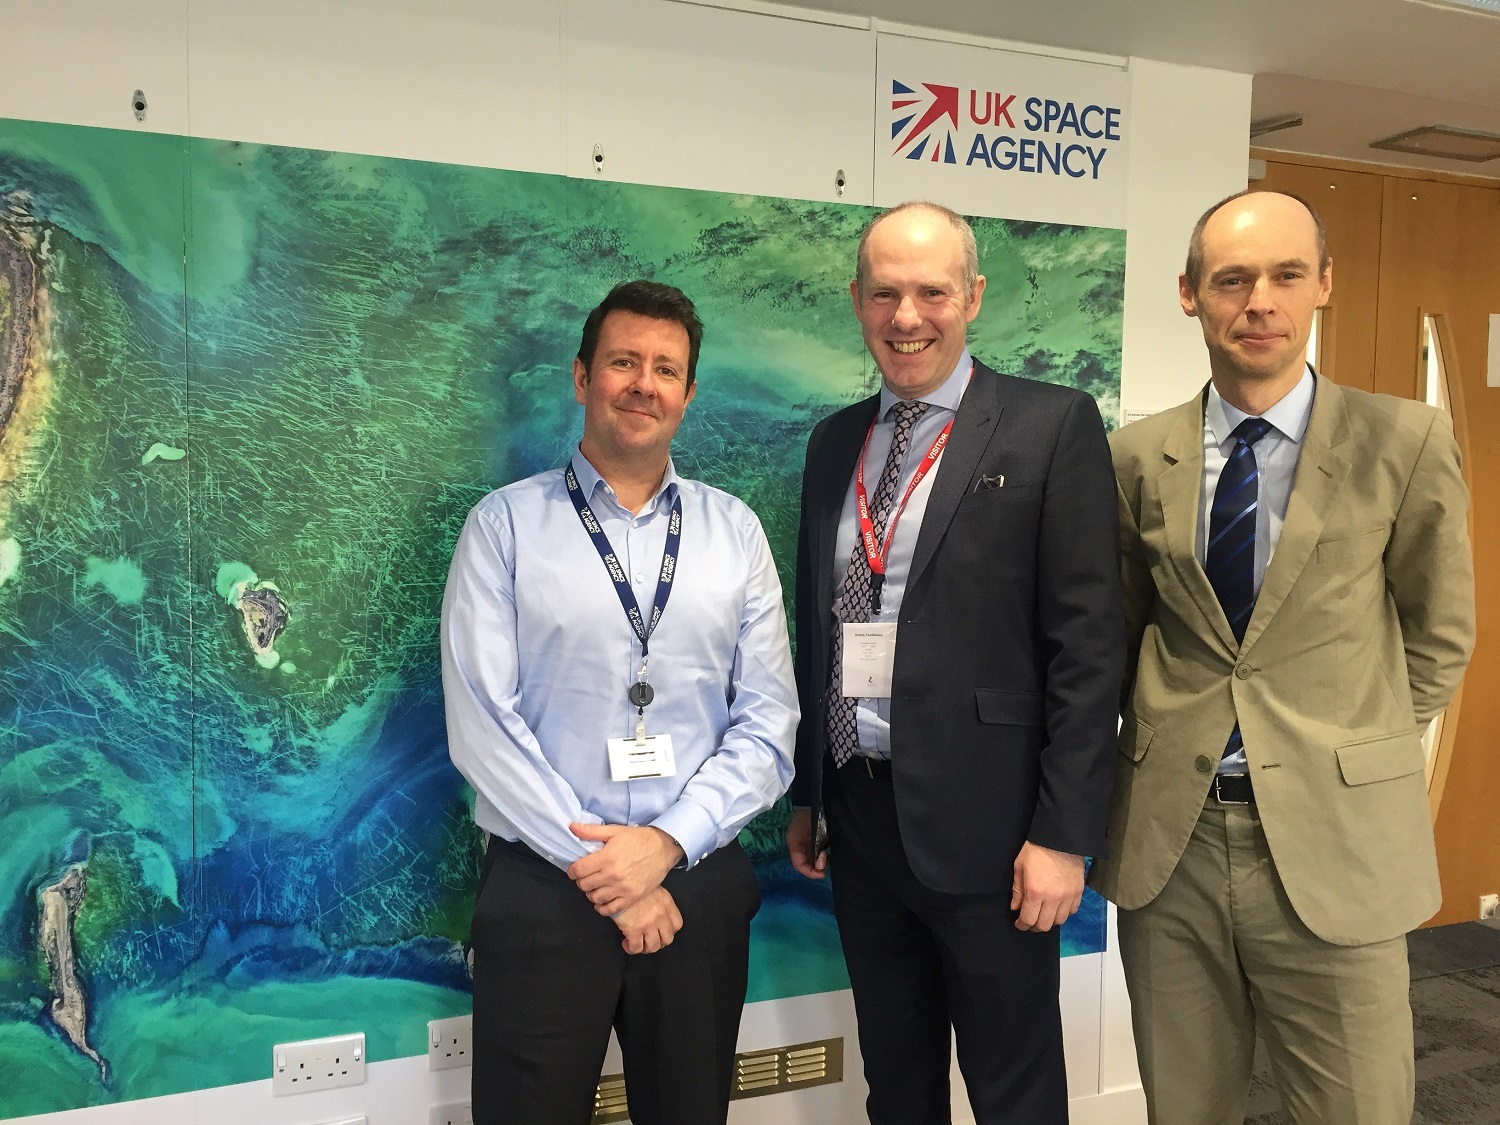 Revolutionary Piece Equipment Made Possible By Funding From Swindon Based UK Space Agency To Be Installed On To The International Space Station (ISS)